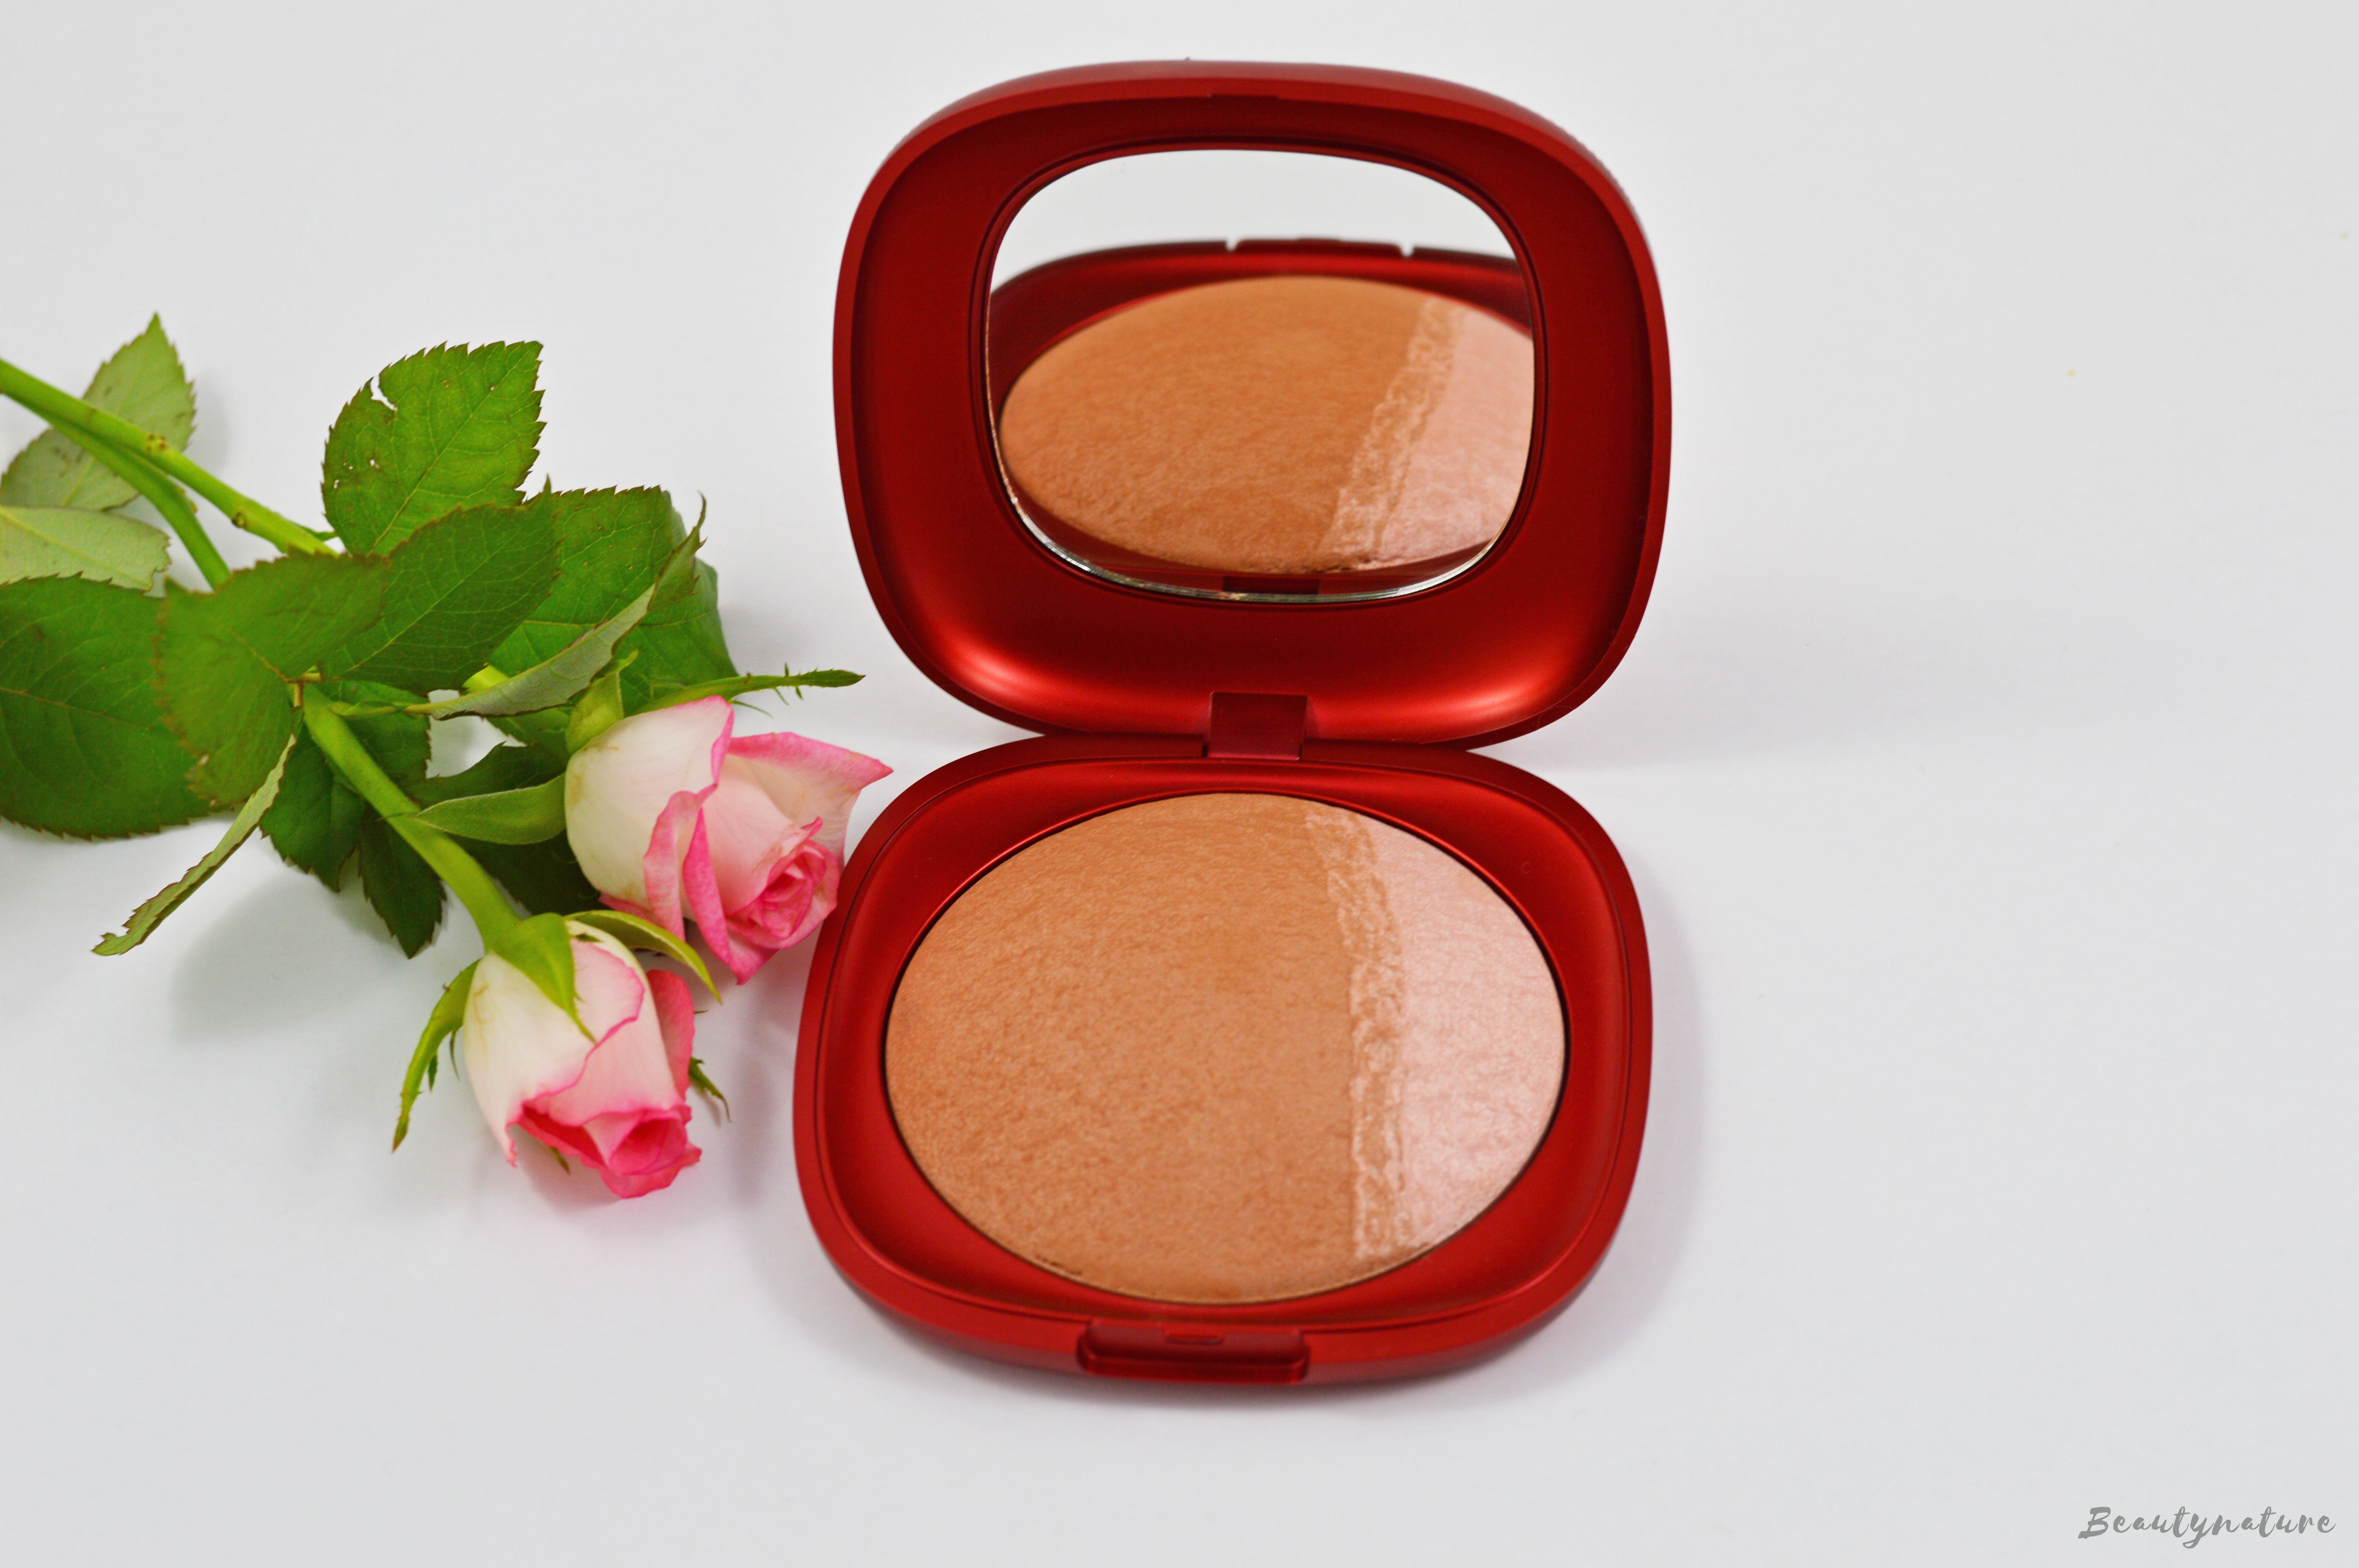 Kiko Milano Holiday Collection 2-IN-1 BRONZER & HIGHLIGHTER